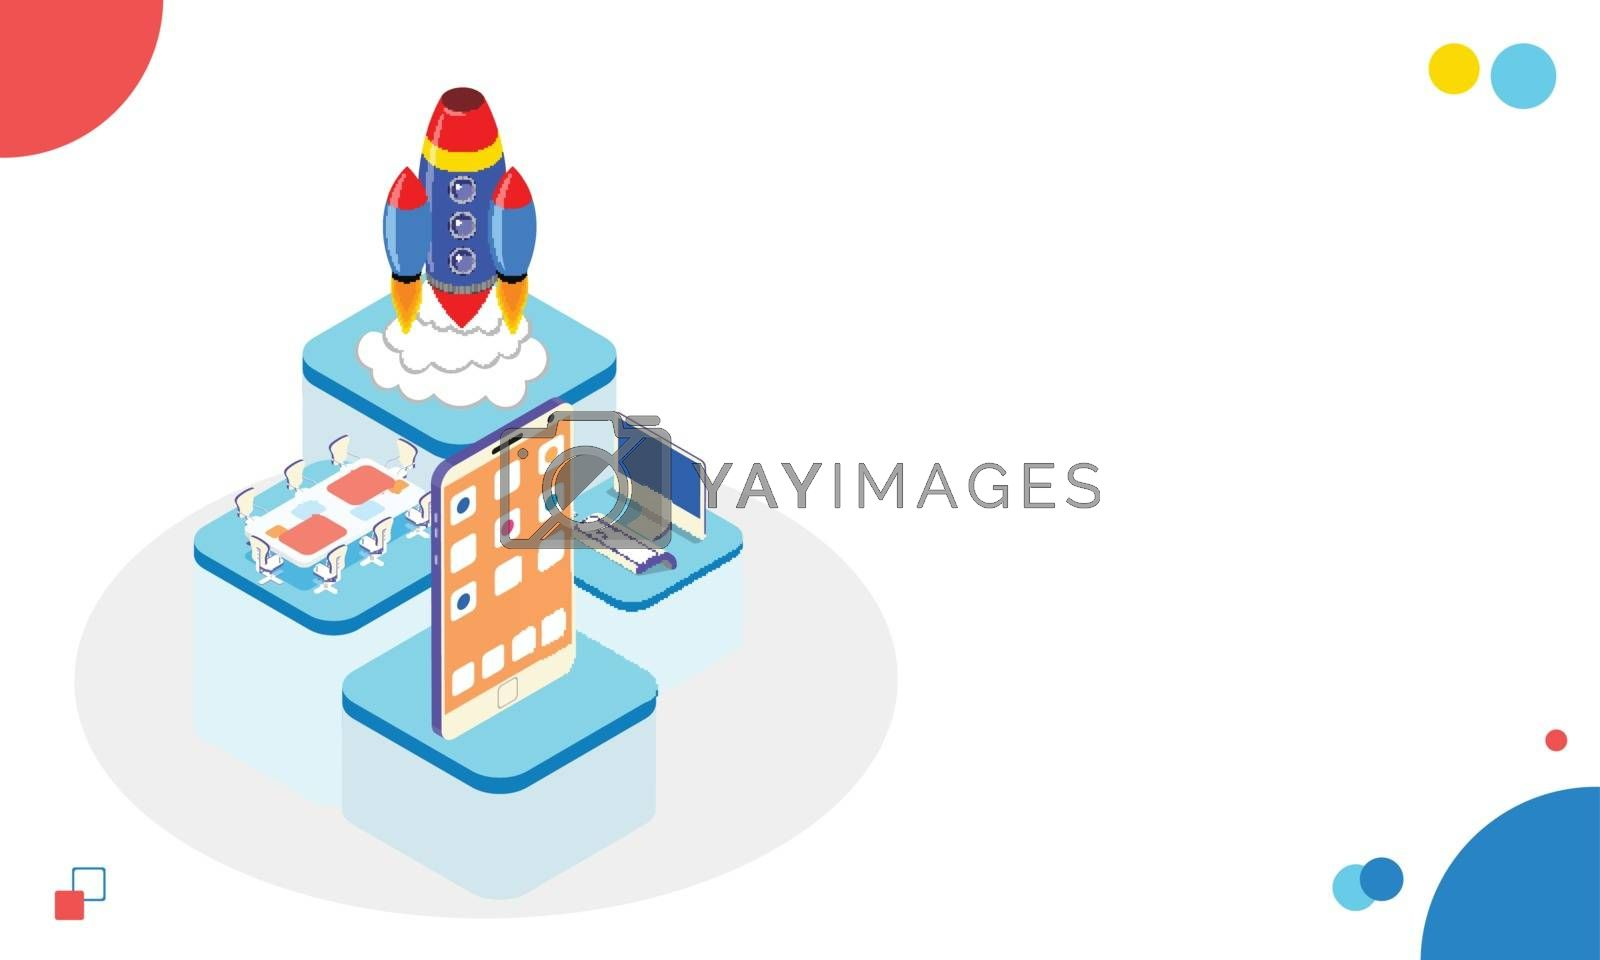 Royalty free image of Business startup concept, isometric smartphone with application, by aispl